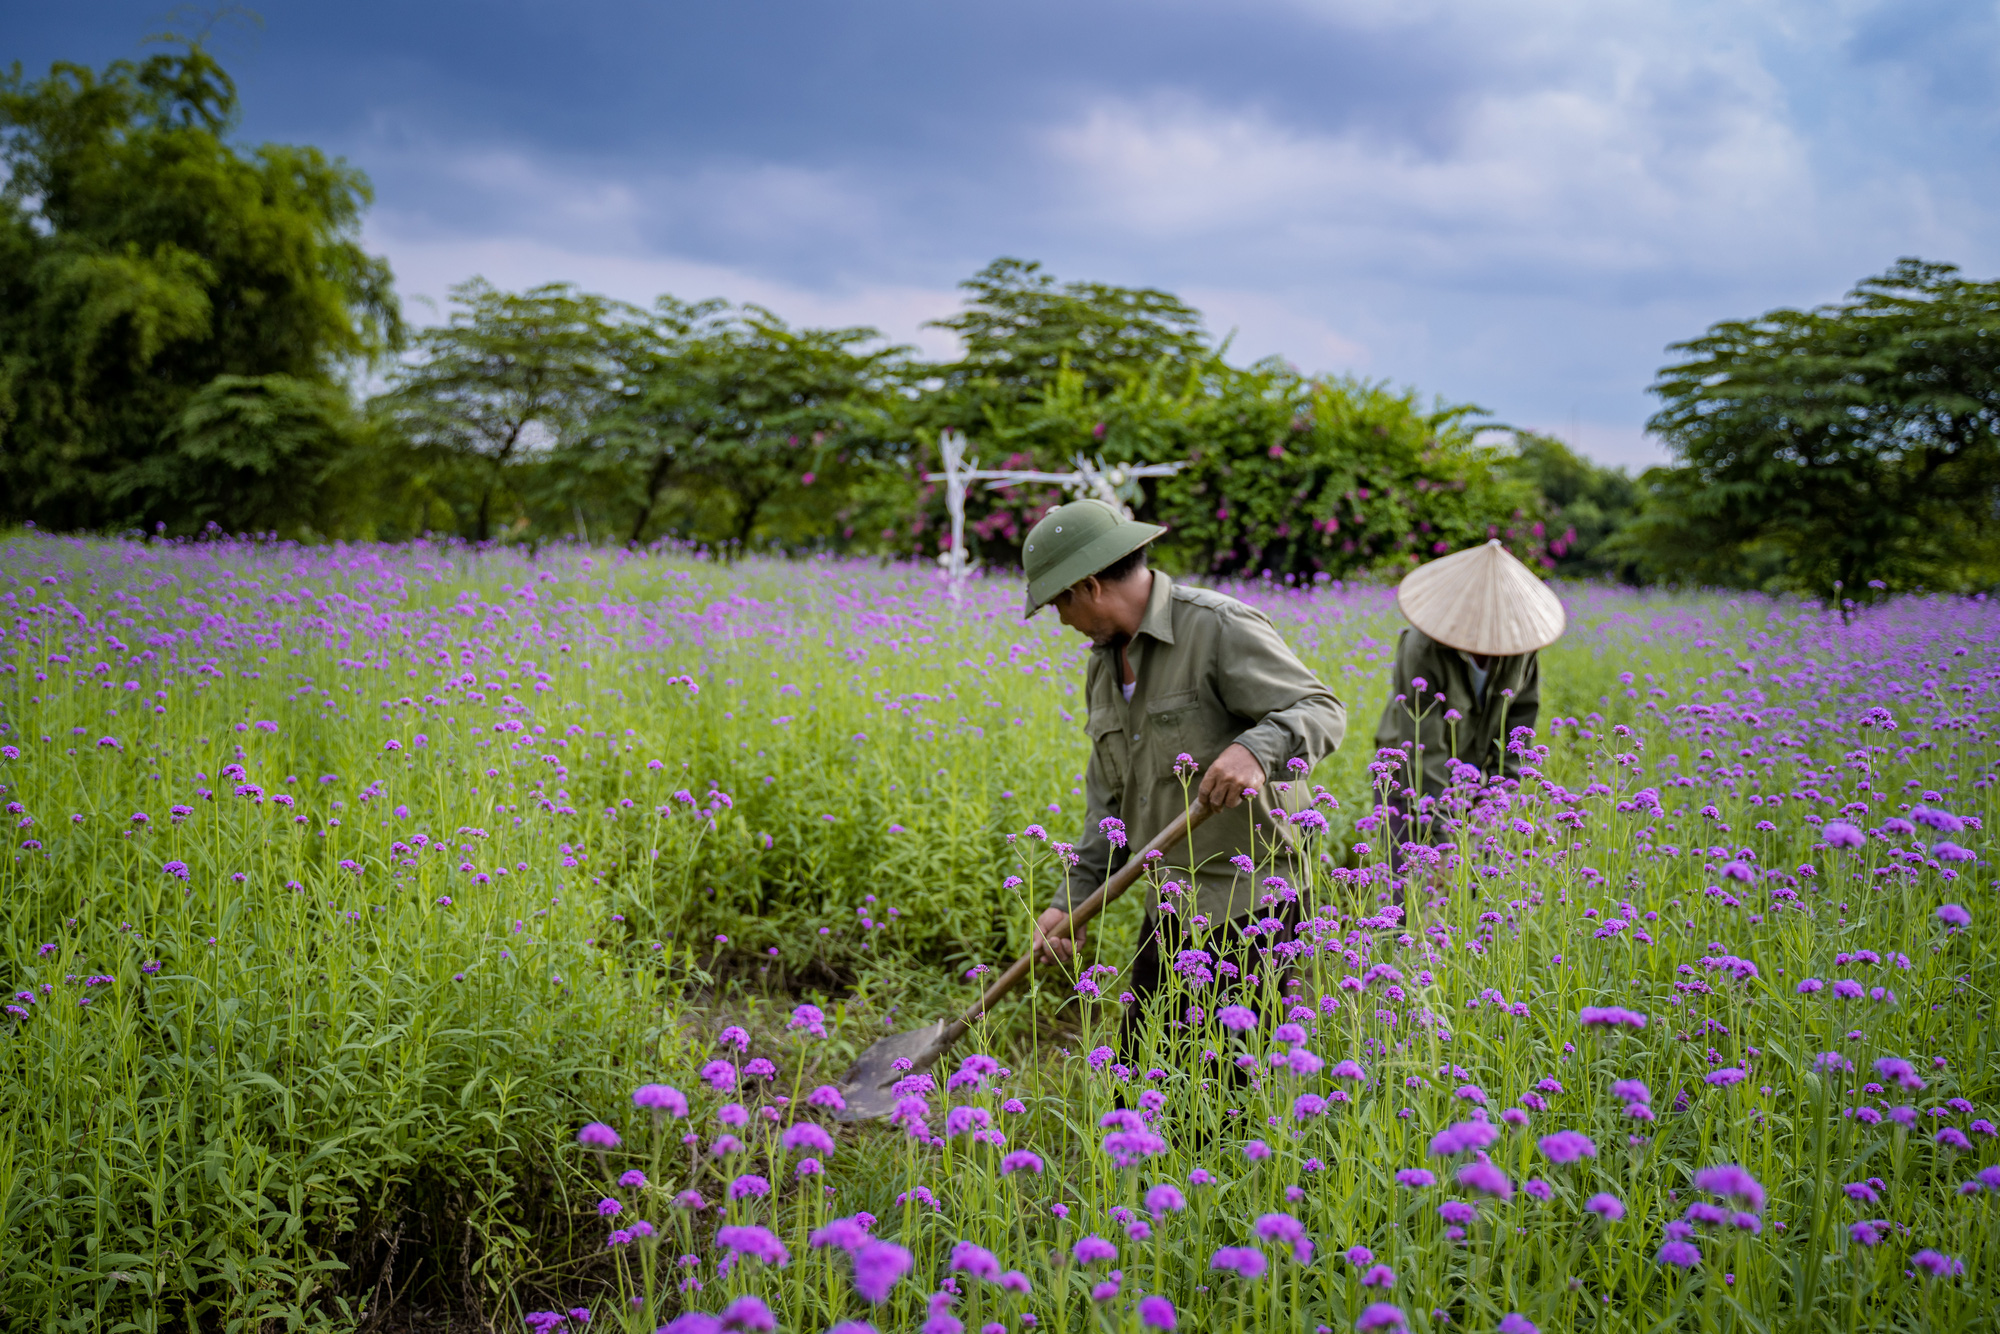 Workers tend to purpletop plants at a farm at the Long Bien flower plateau in Hanoi, Vietnam. Photo: Pham Tuan / Tuoi Tre